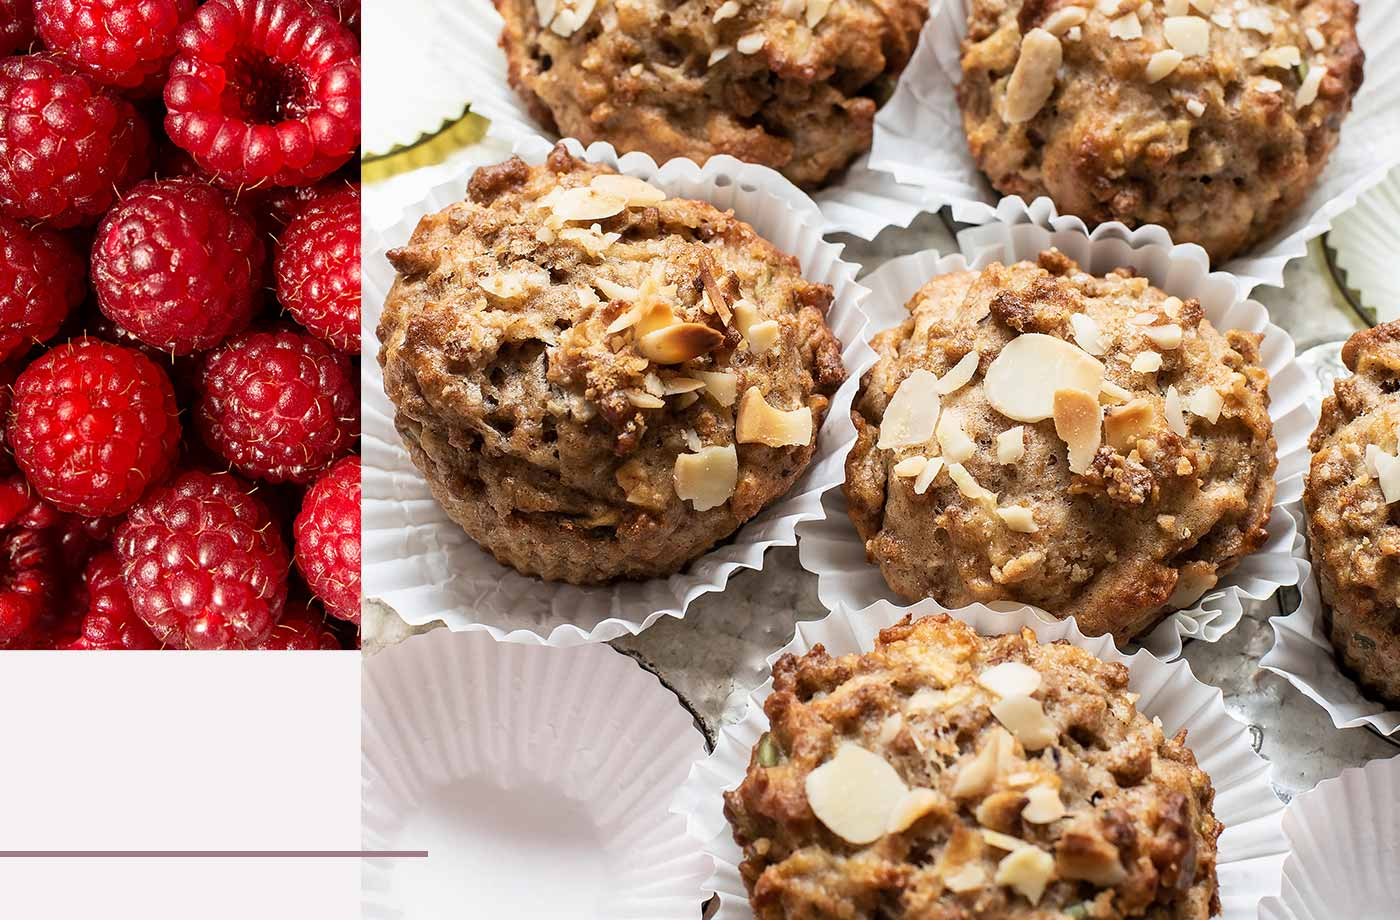 Thumbnail for Sick of Banana Bread? Use Pantry Staples to Make This Delicious Gluten-Free Muffins Recipe